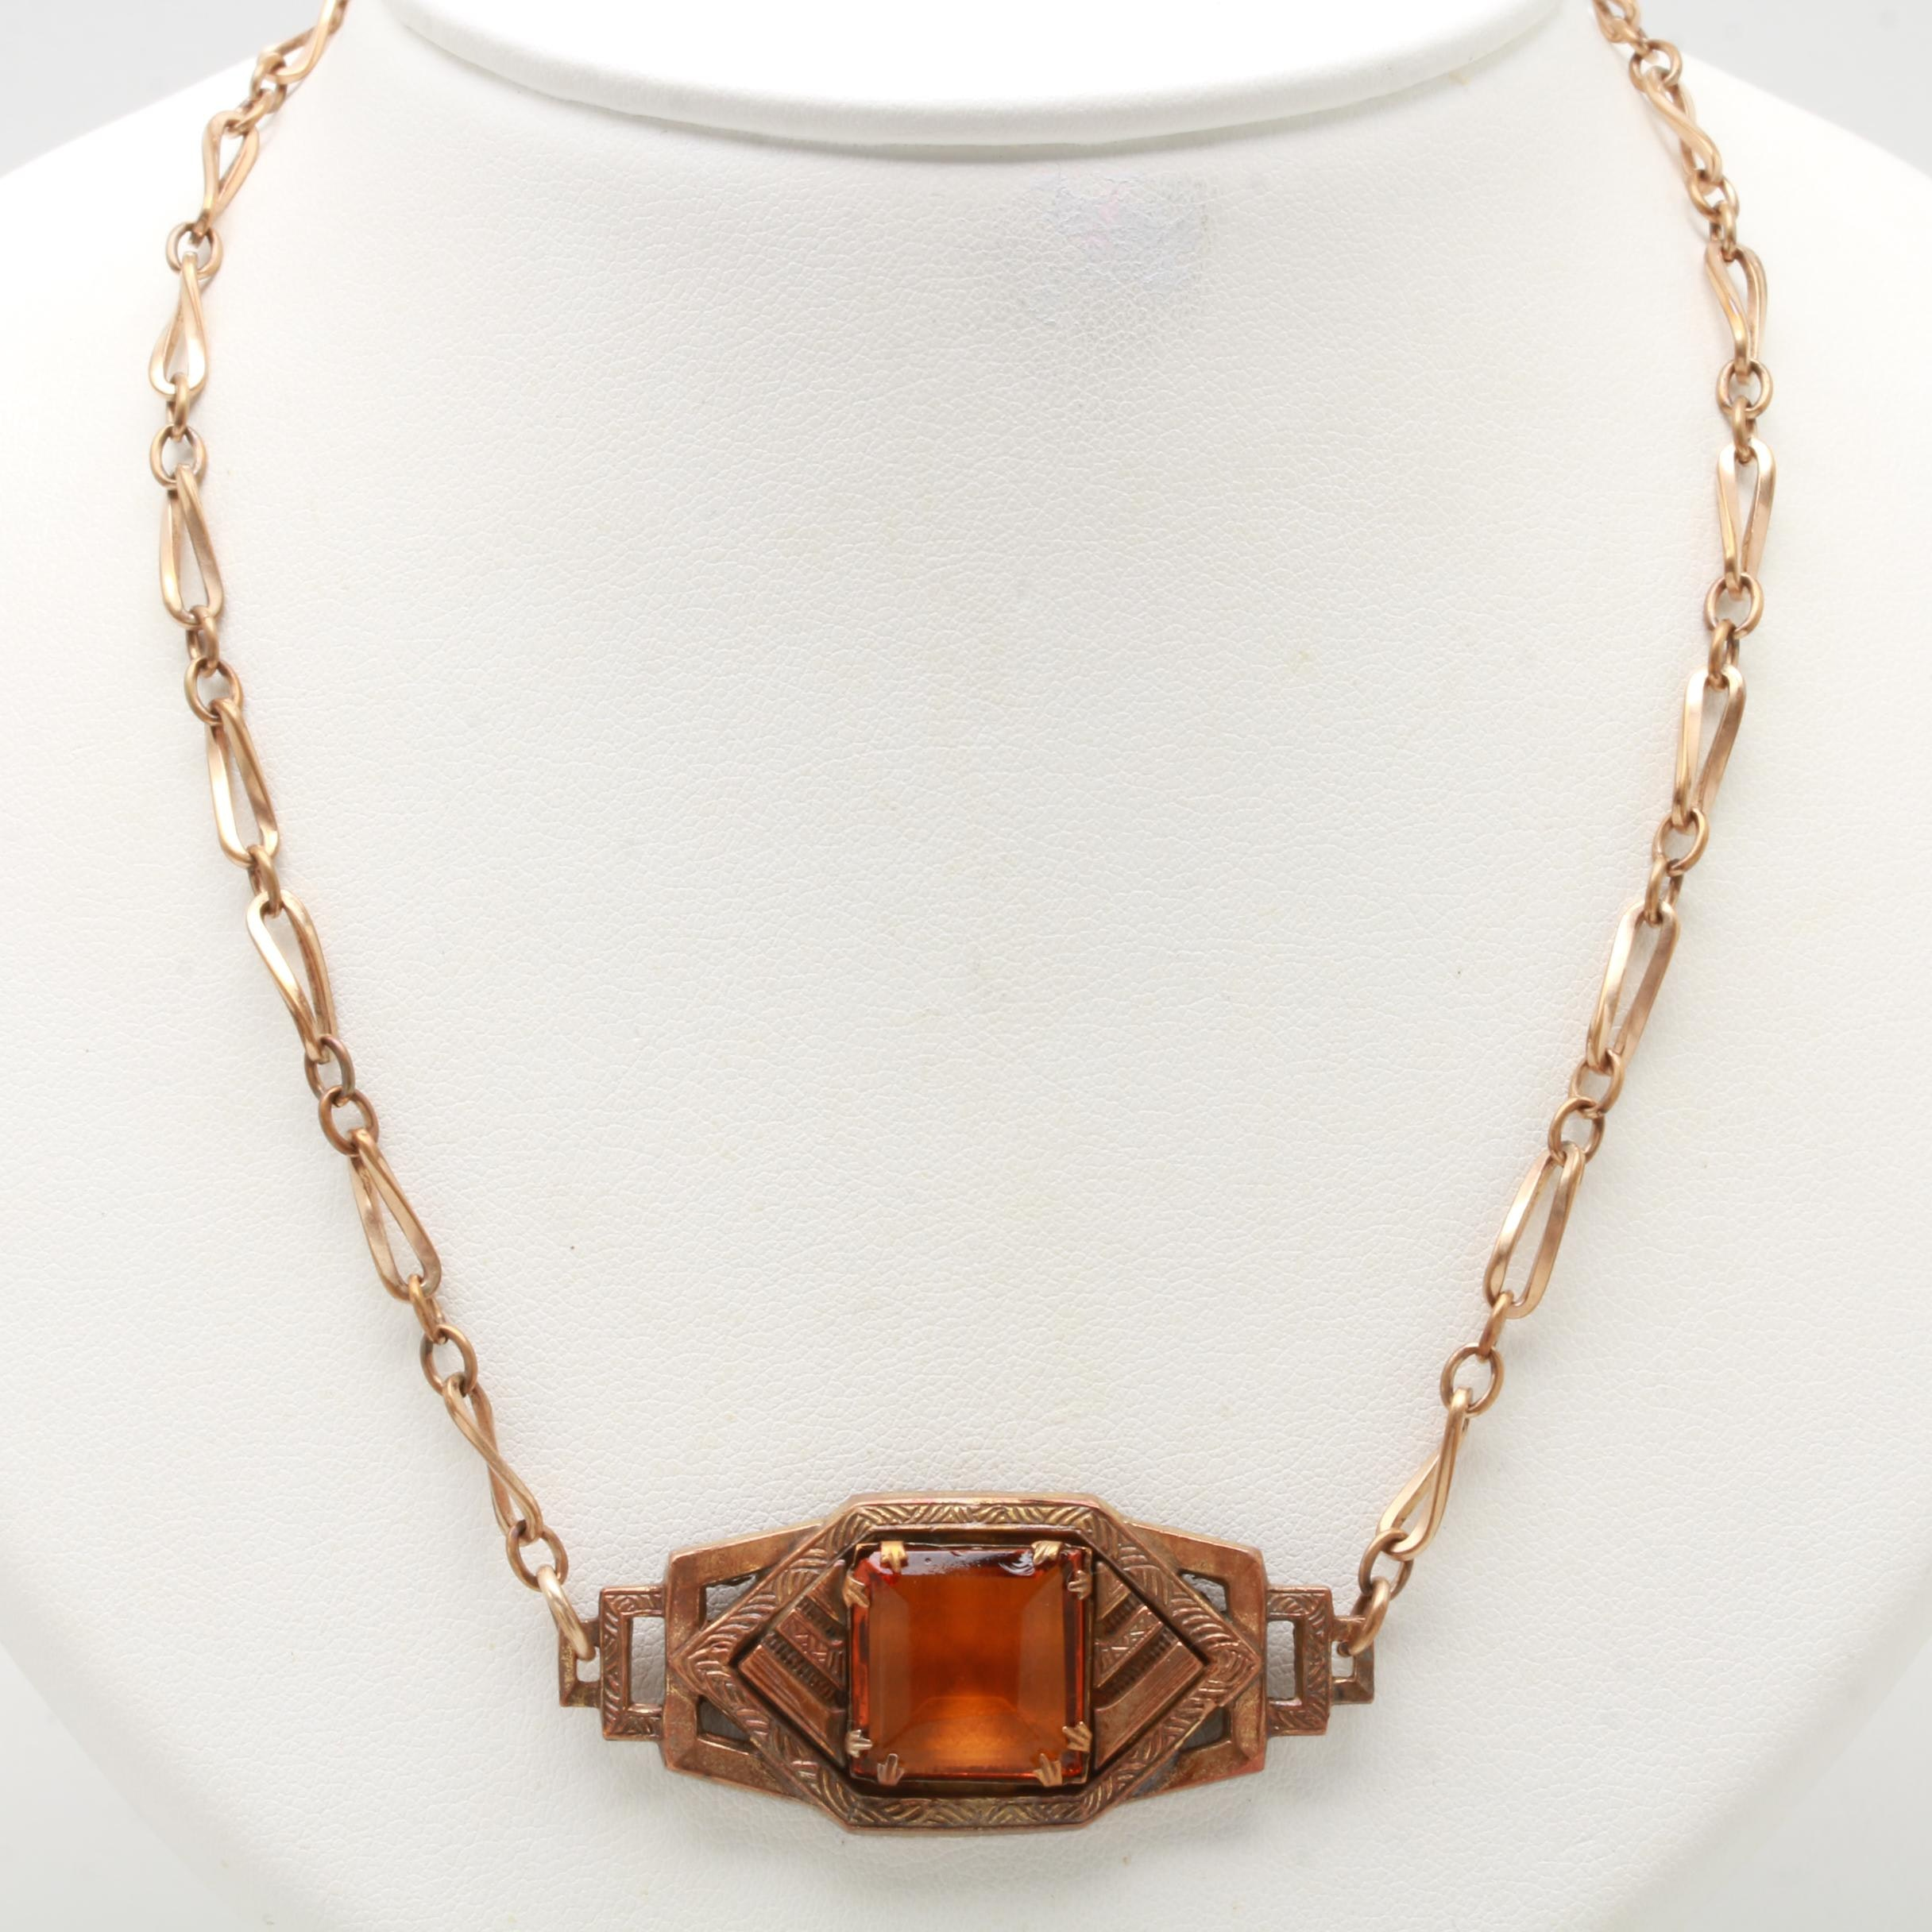 Art Deco Rose Gold Tone and Glass Pendant Necklace